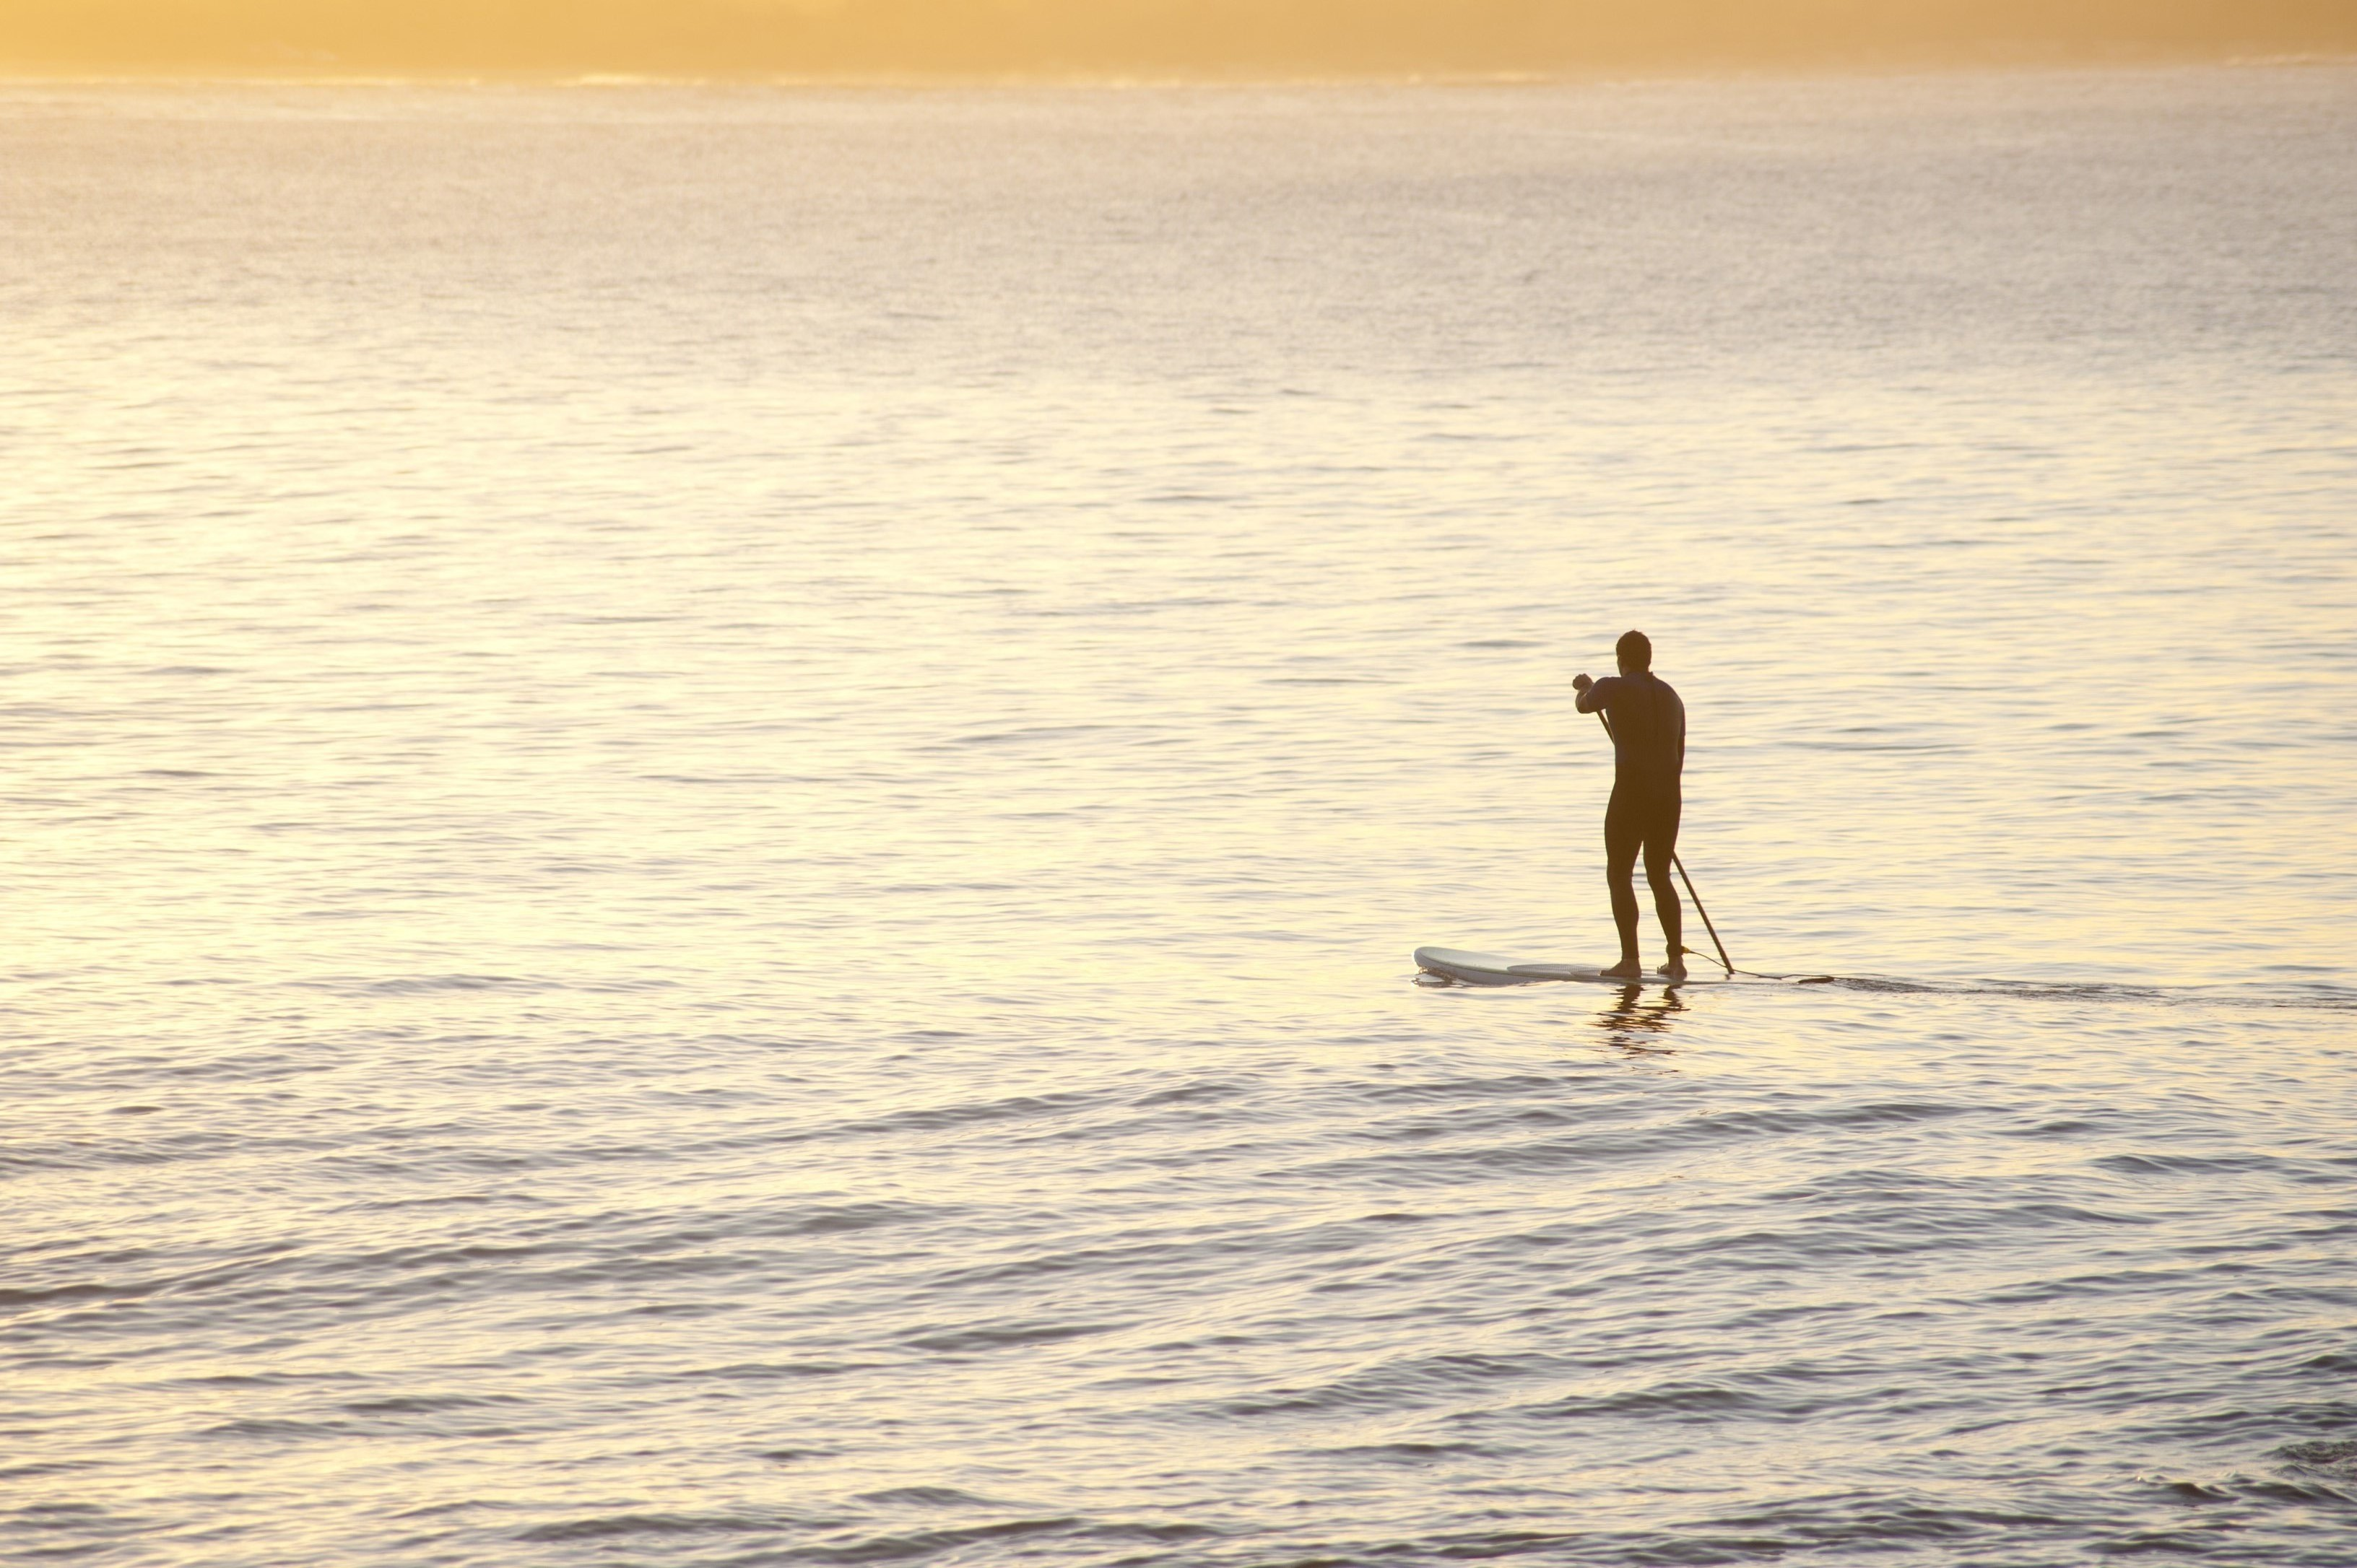 Man on a paddle board paddling across a calm ocean parallel to a sandy tropical beach, silhouetted against bright water with copyspace